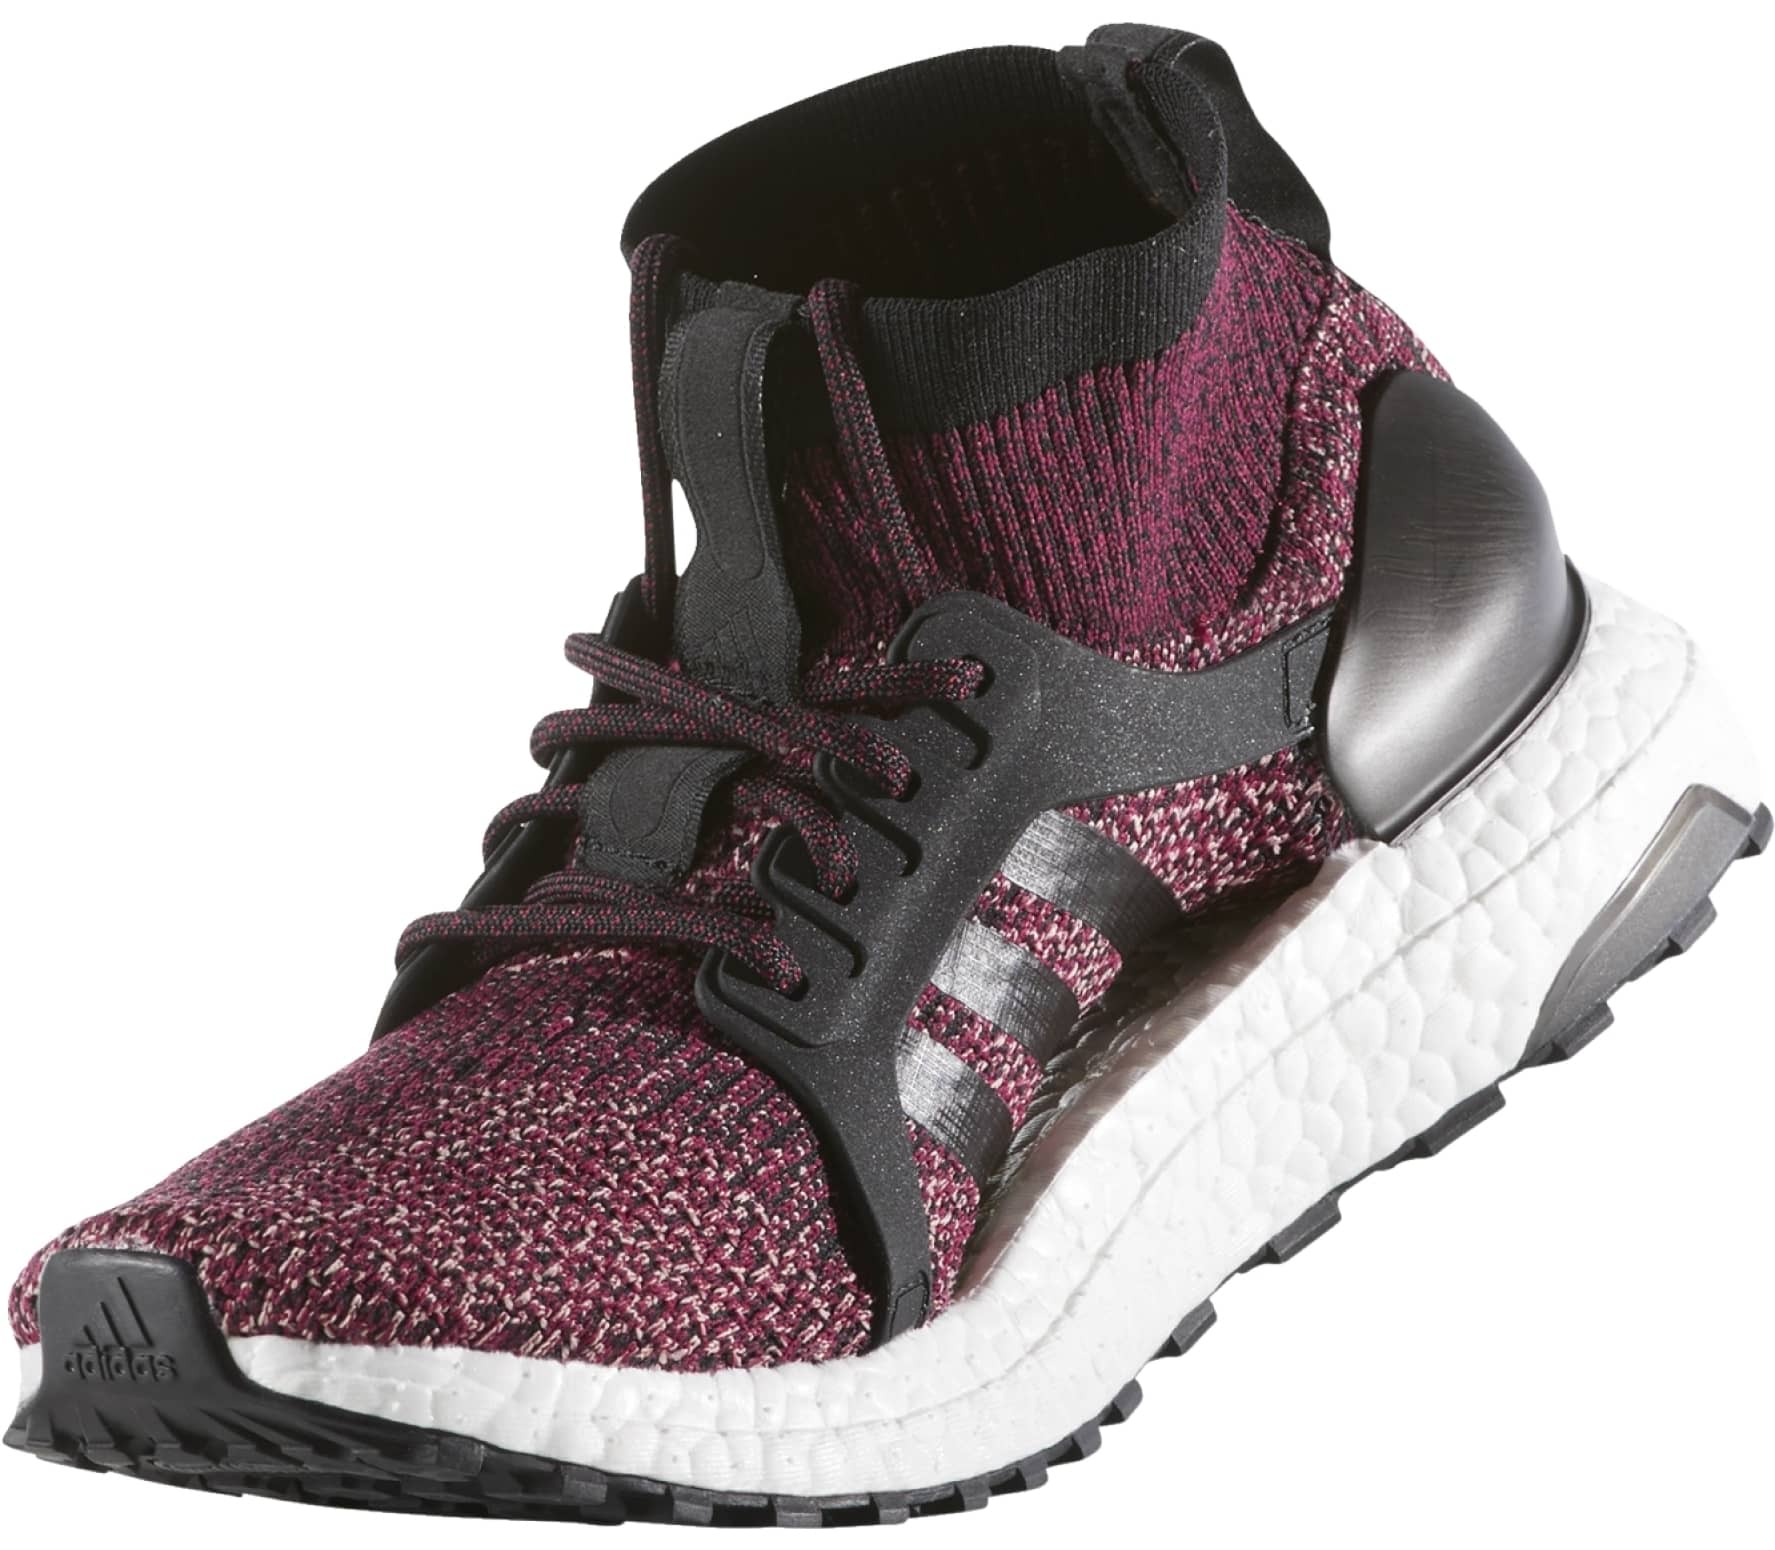 Adidas - Ultra Boost X ATR women s running shoes (dark red black ... 7e13362c10